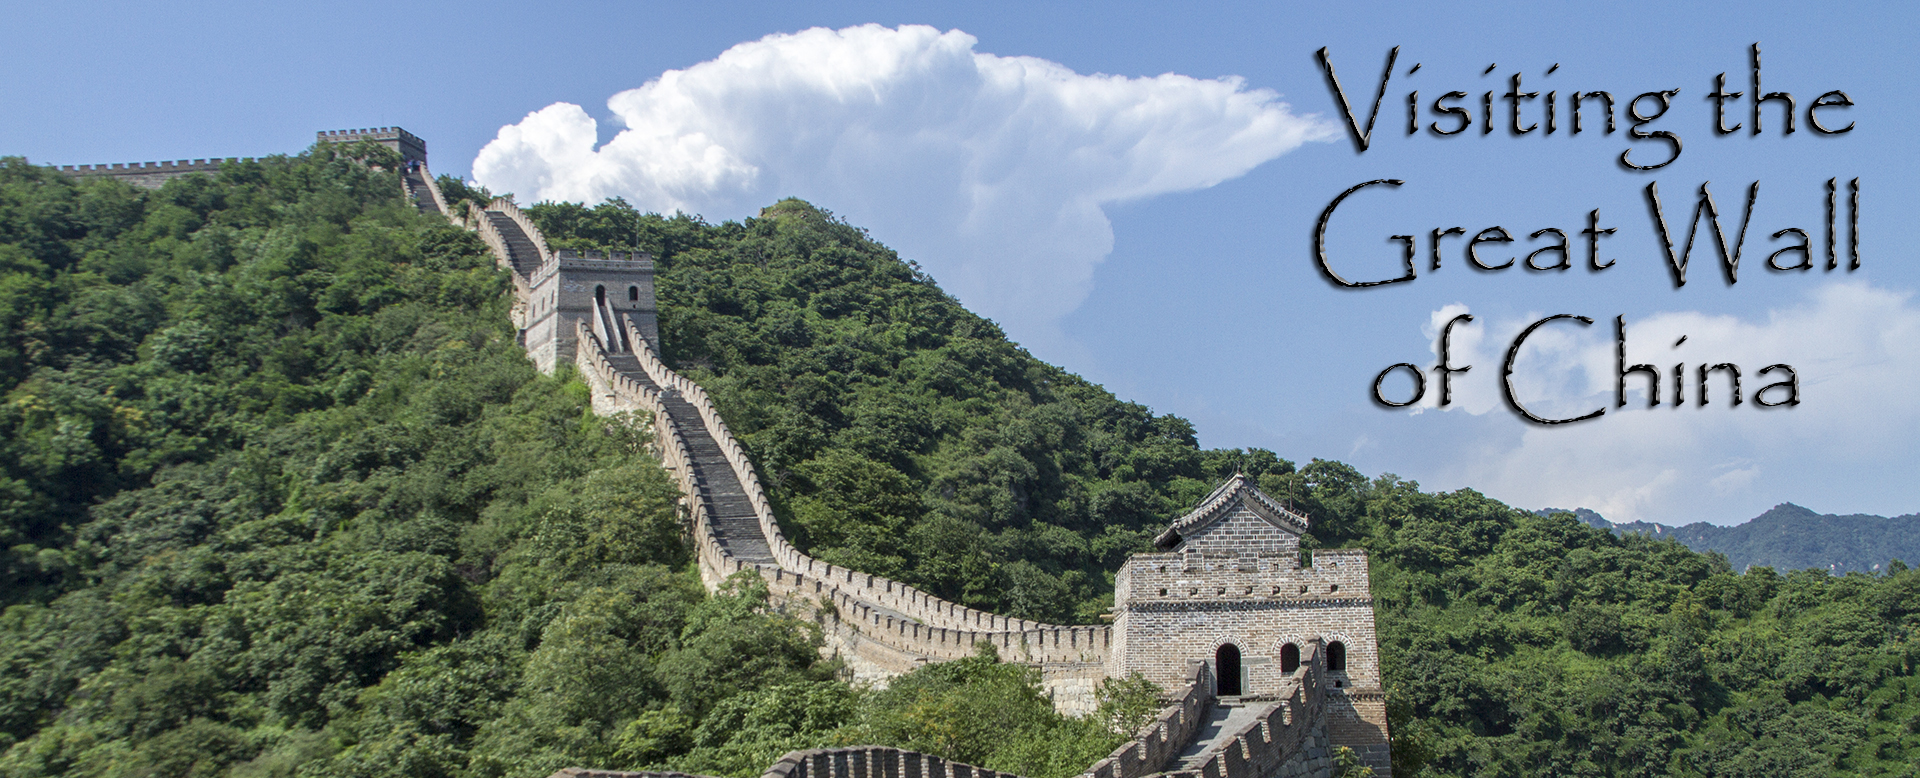 Great Wall China Thesis Statement